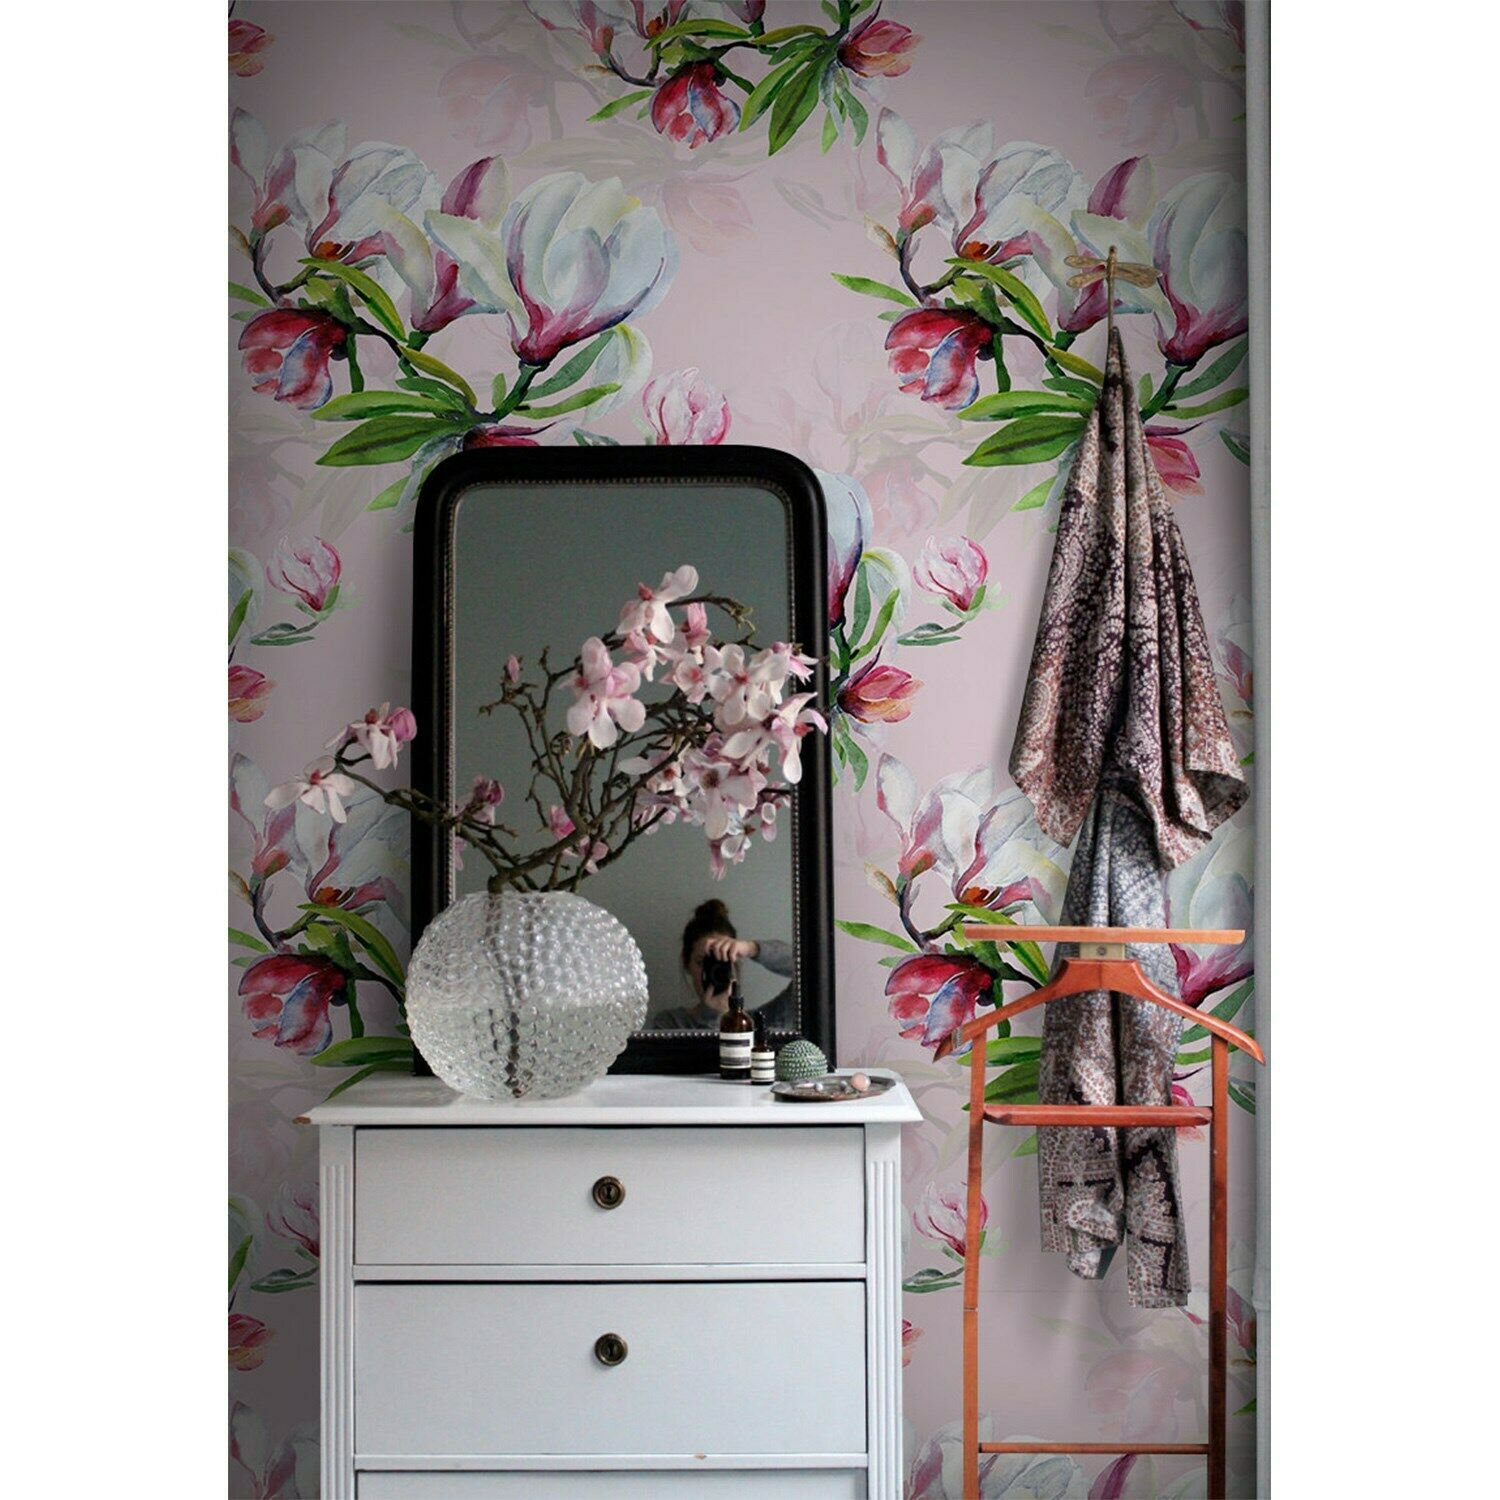 Removable wallpaper Magnolia flower Botanical WaterFarbe floral Wall decal